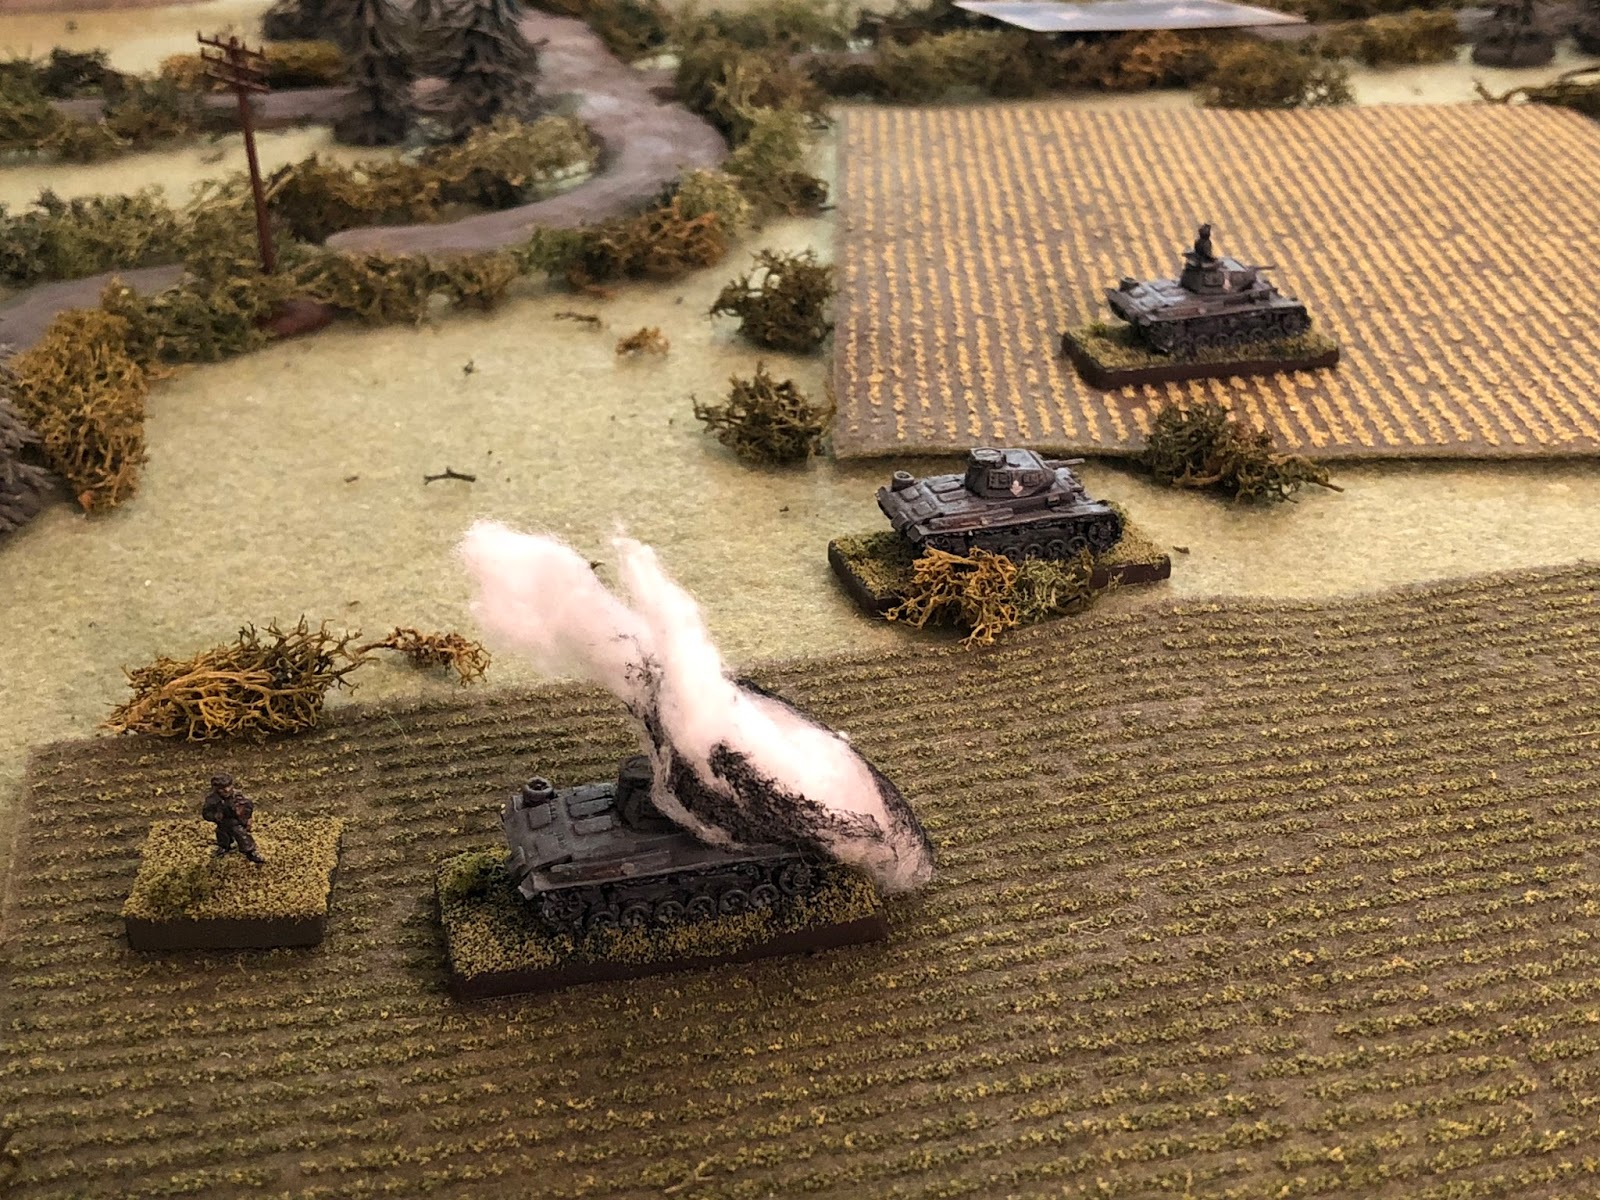 BAM!!!!  SSgt Grossman, groggy from shock and bleeding from his forehead and his loader are the only crew members able to bail out of the disabled Panzer III.